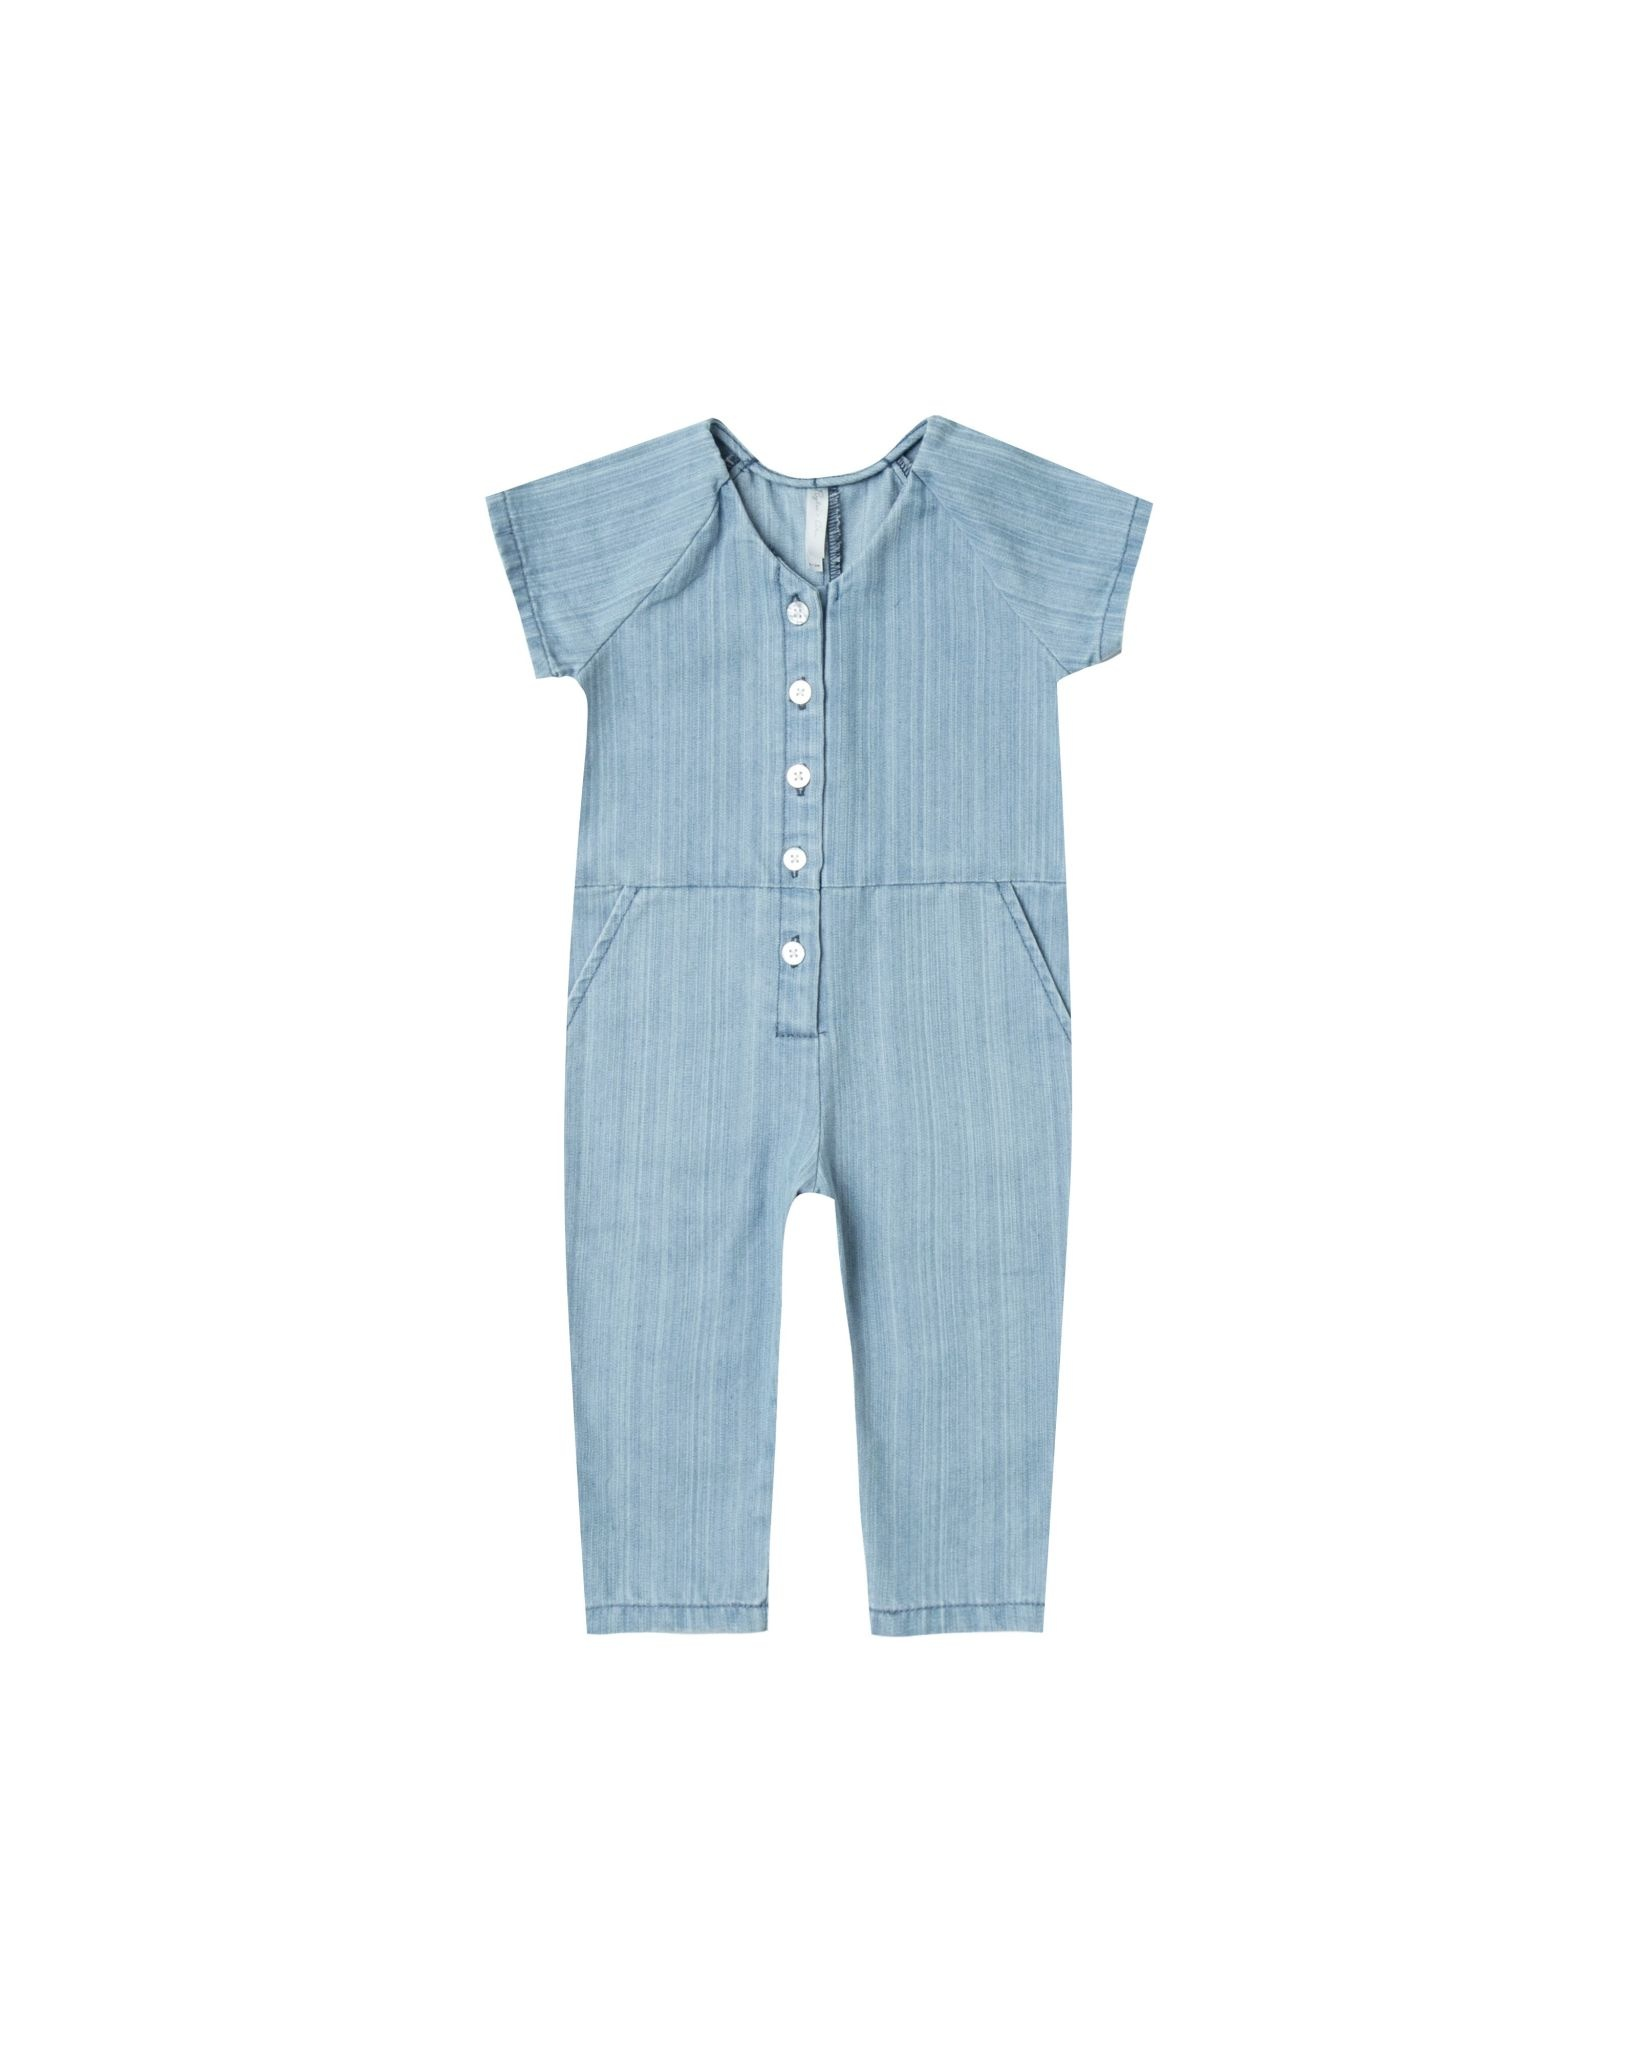 RYLEE AND CRU Utility Baby Jumpsuit